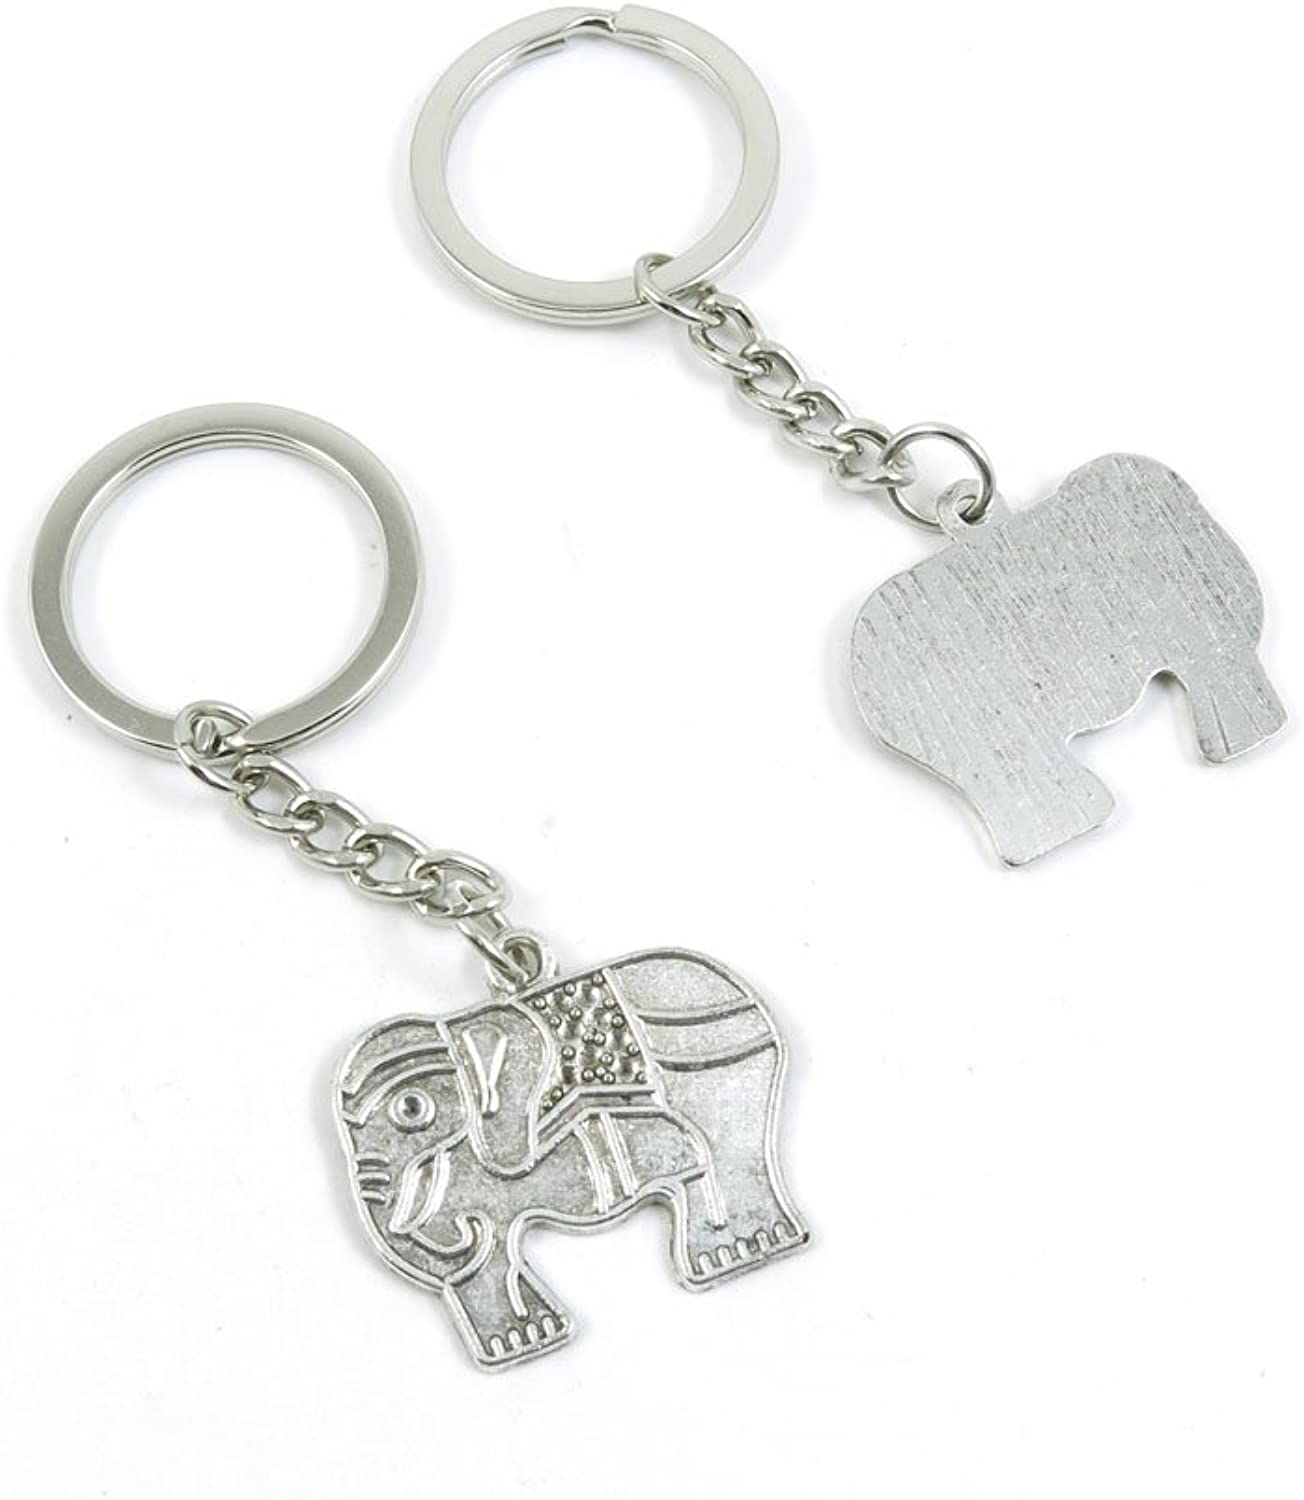 100 Pieces Keychain Keyring Door Car Key Chain Ring Tag Charms Bulk Supply Jewelry Making Clasp Findings X2ZV2X Thai Elephant